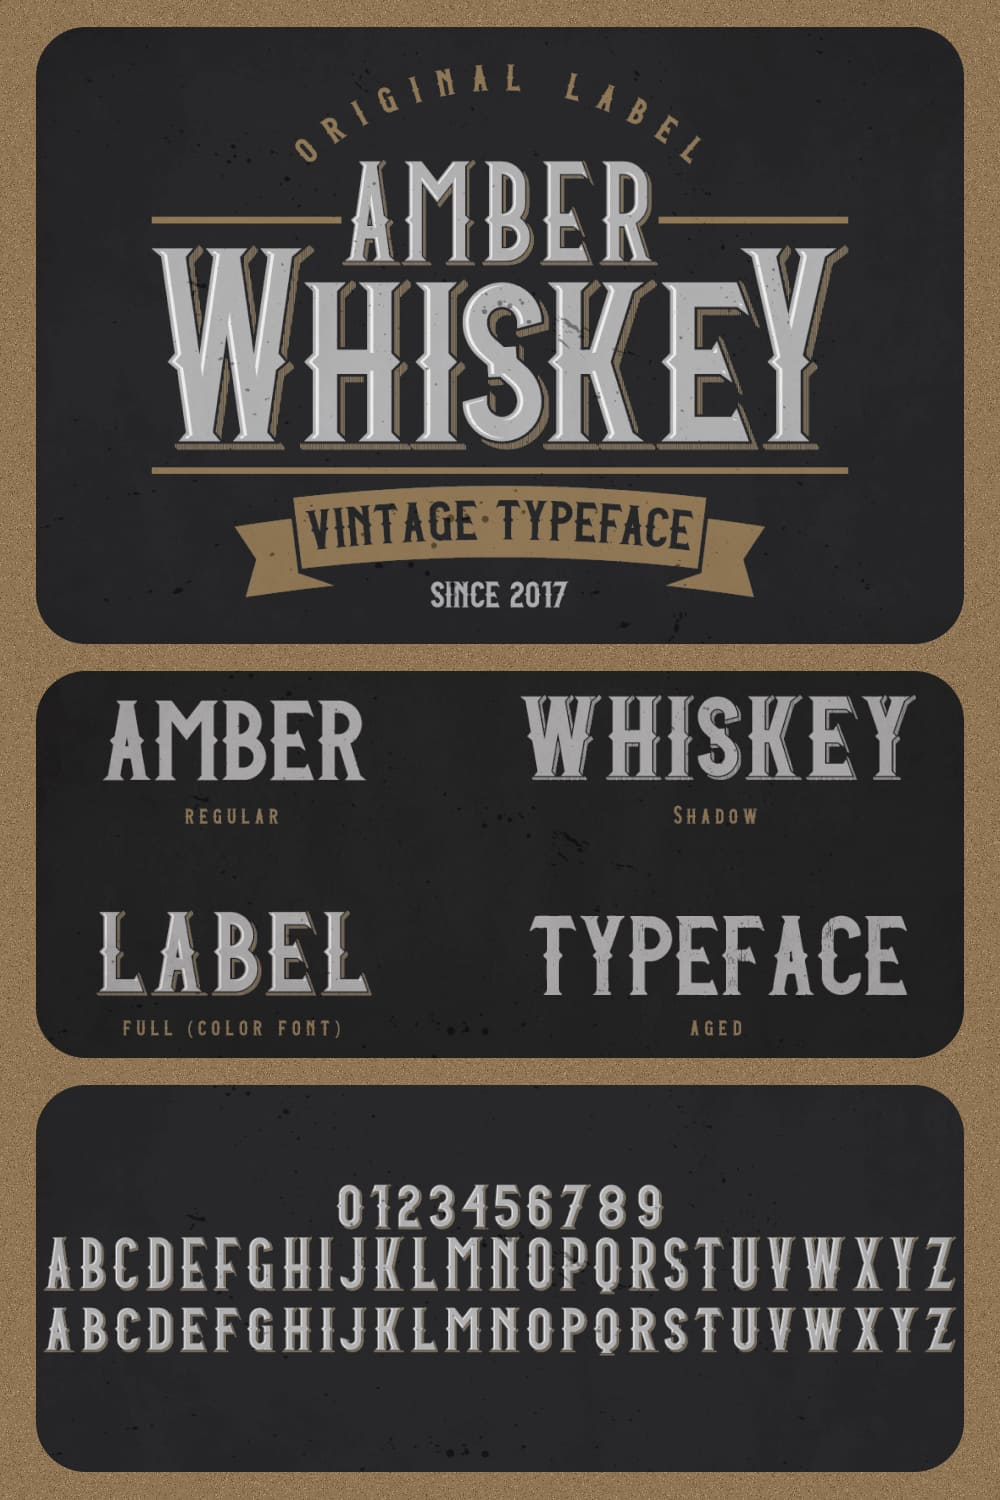 A vintage typeface that will look cool on an expensive whiskey label.